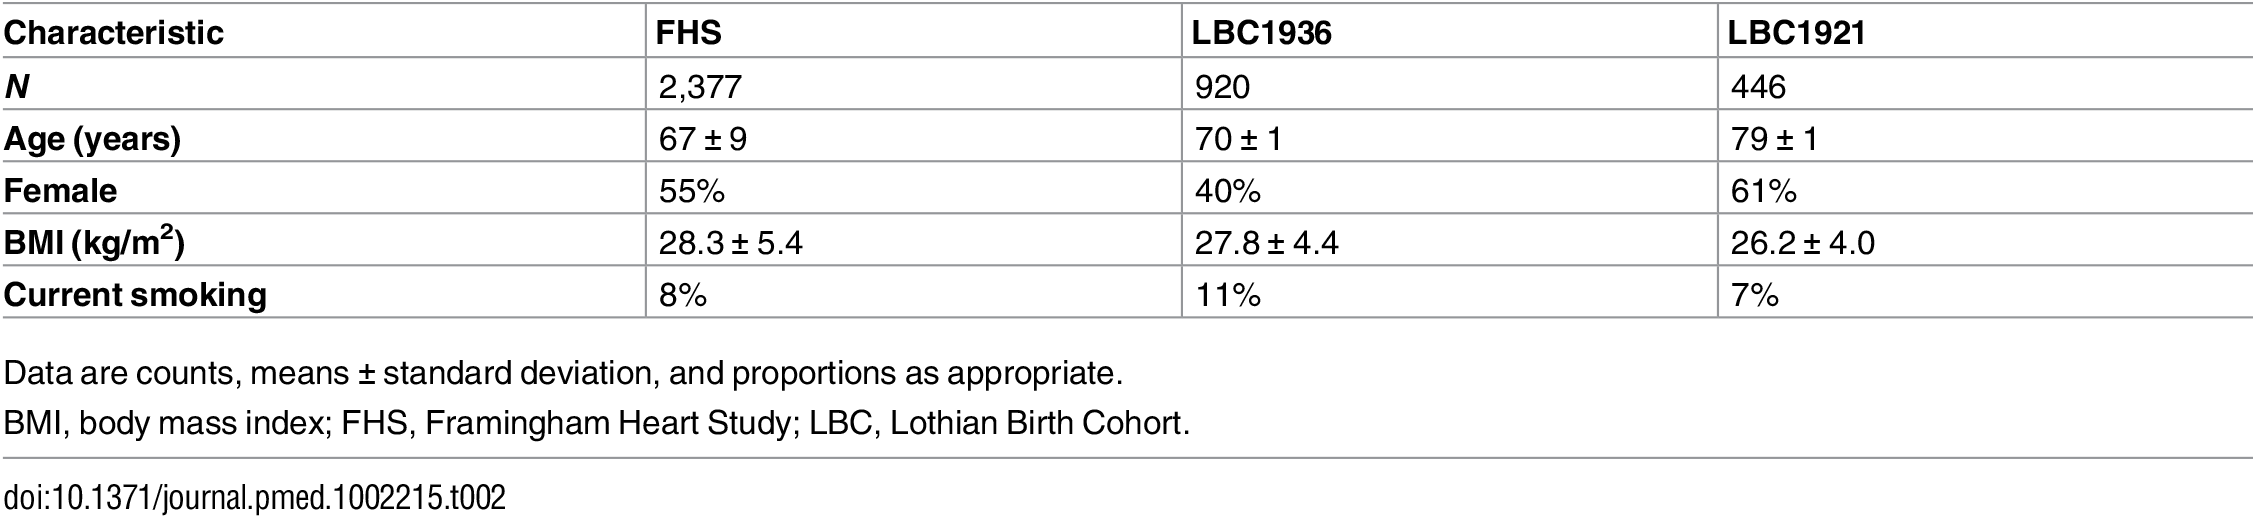 Study characteristics of the Framingham Heart Study and Lothian Birth Cohort participants (discovery cohorts) at the time of DNA methylation assays.